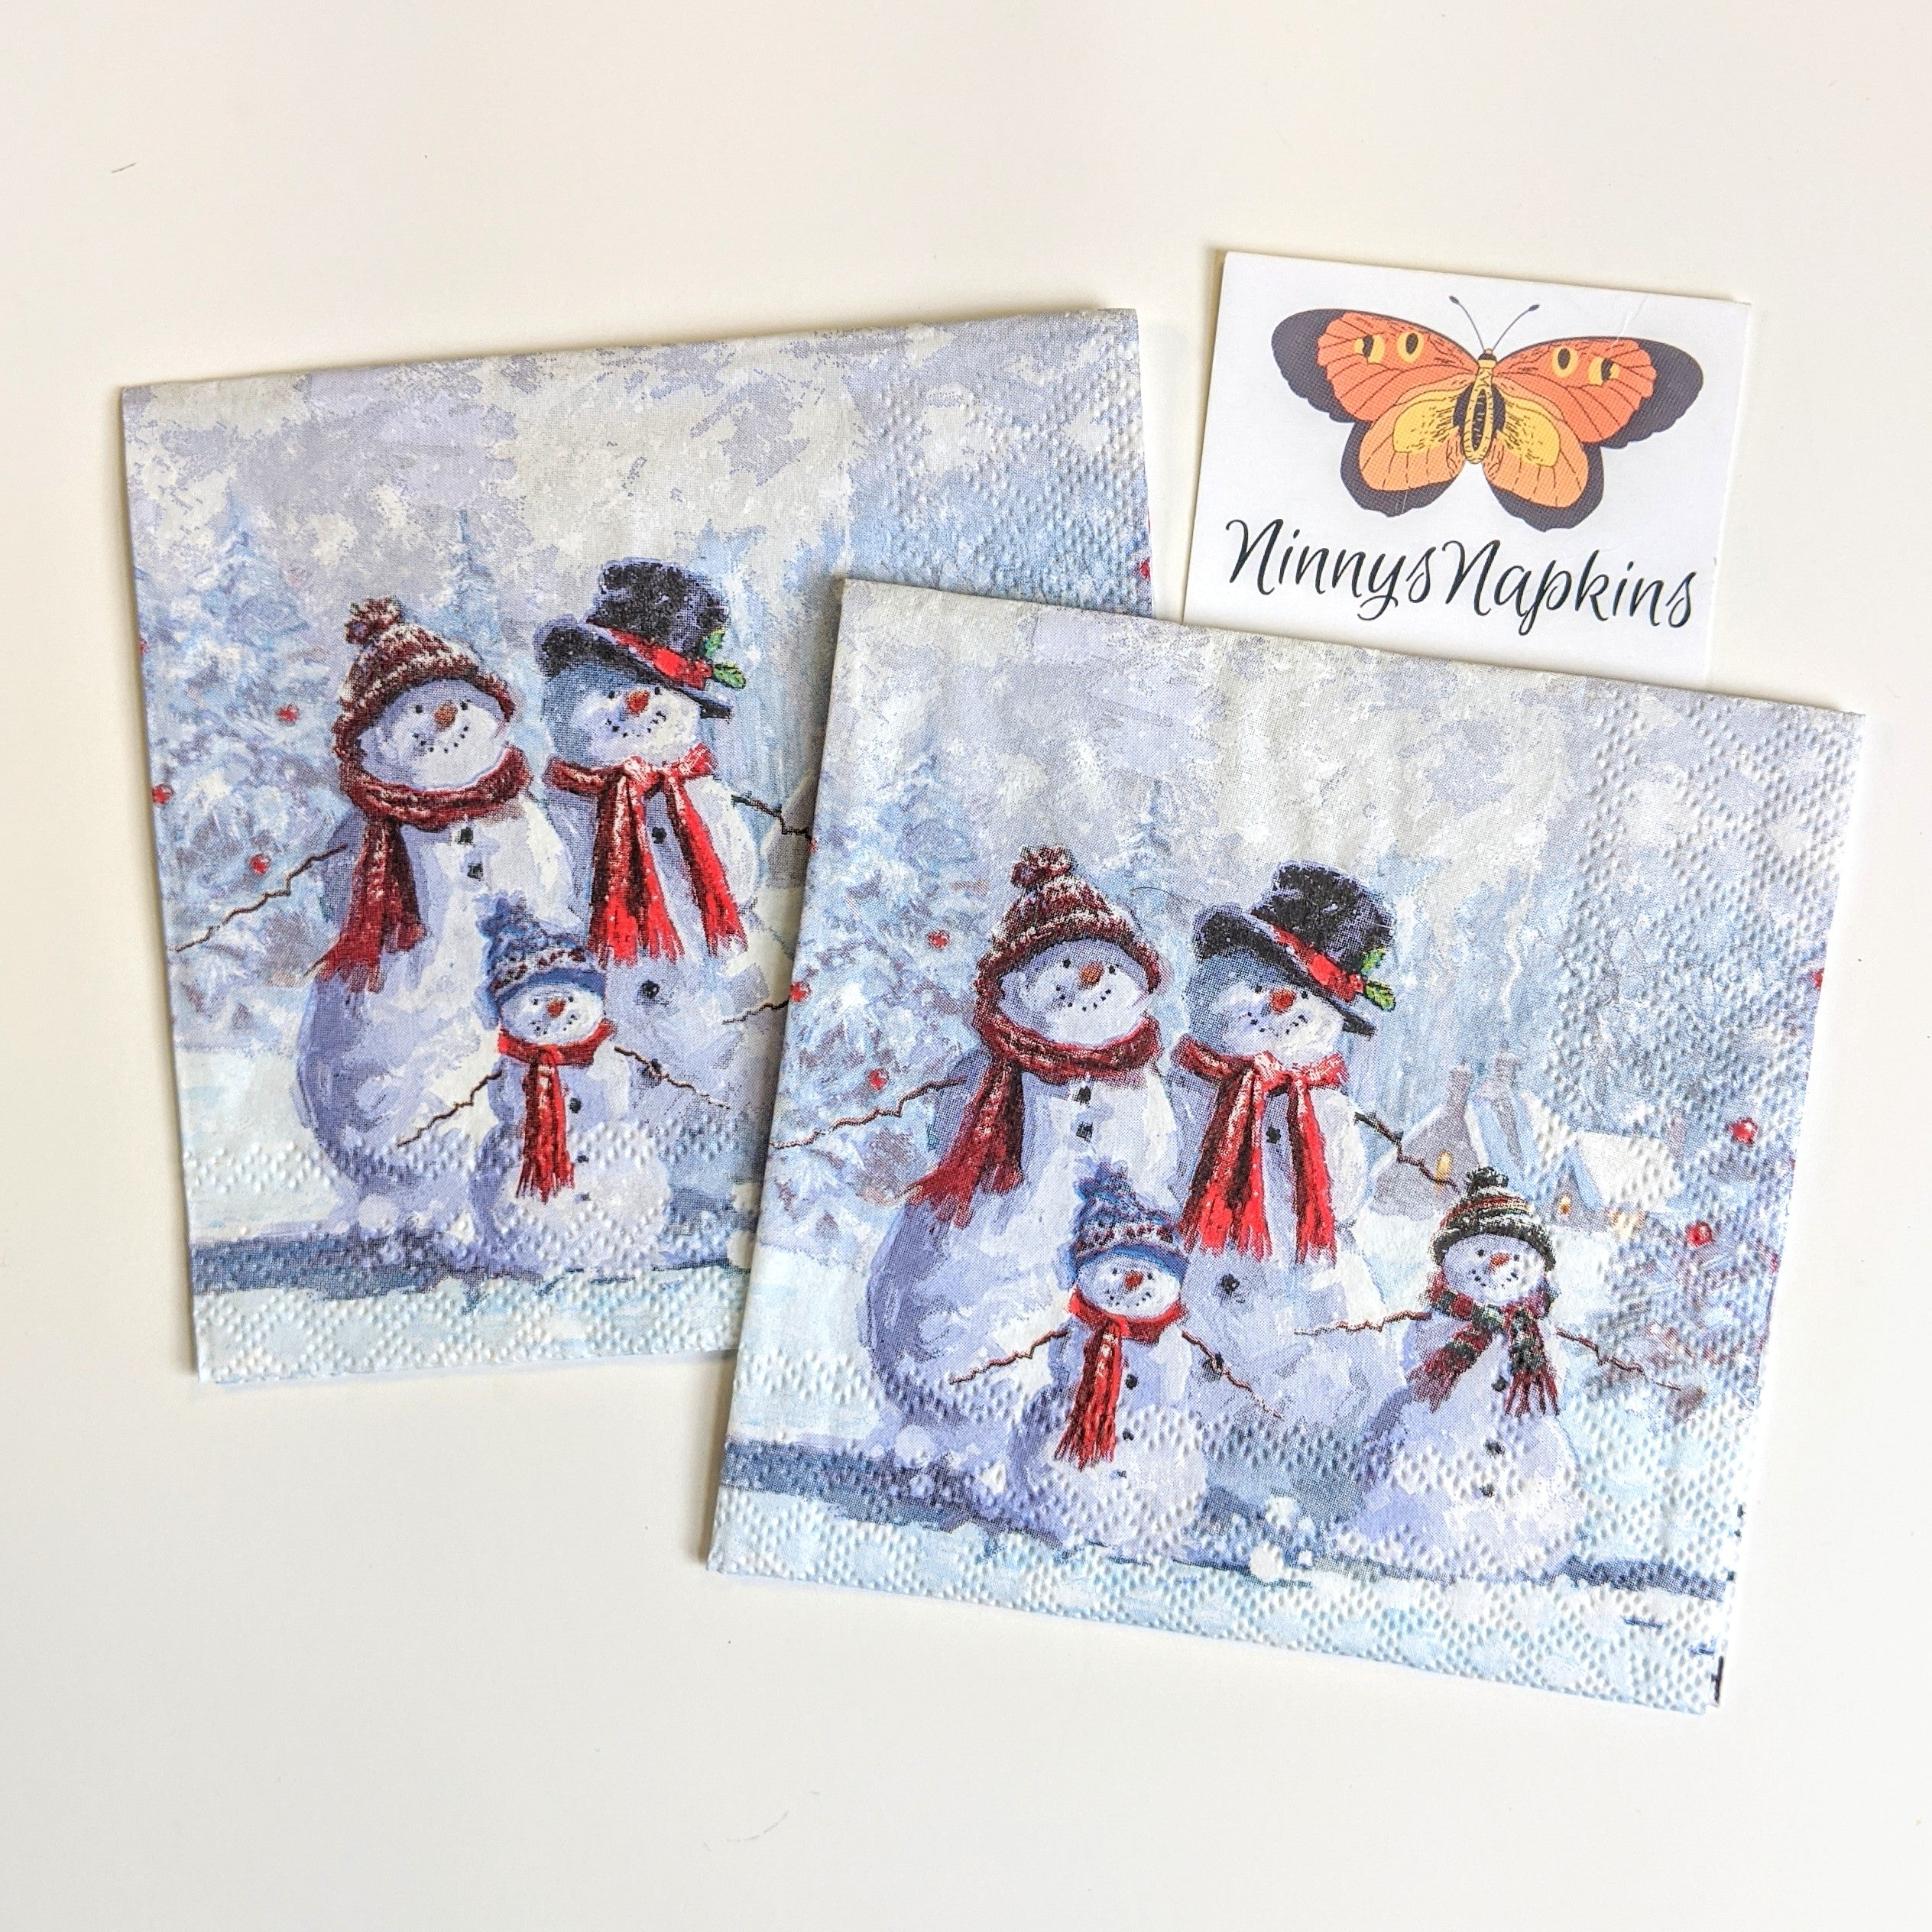 Snowman with Hat - Ninnys Napkins for decoupage